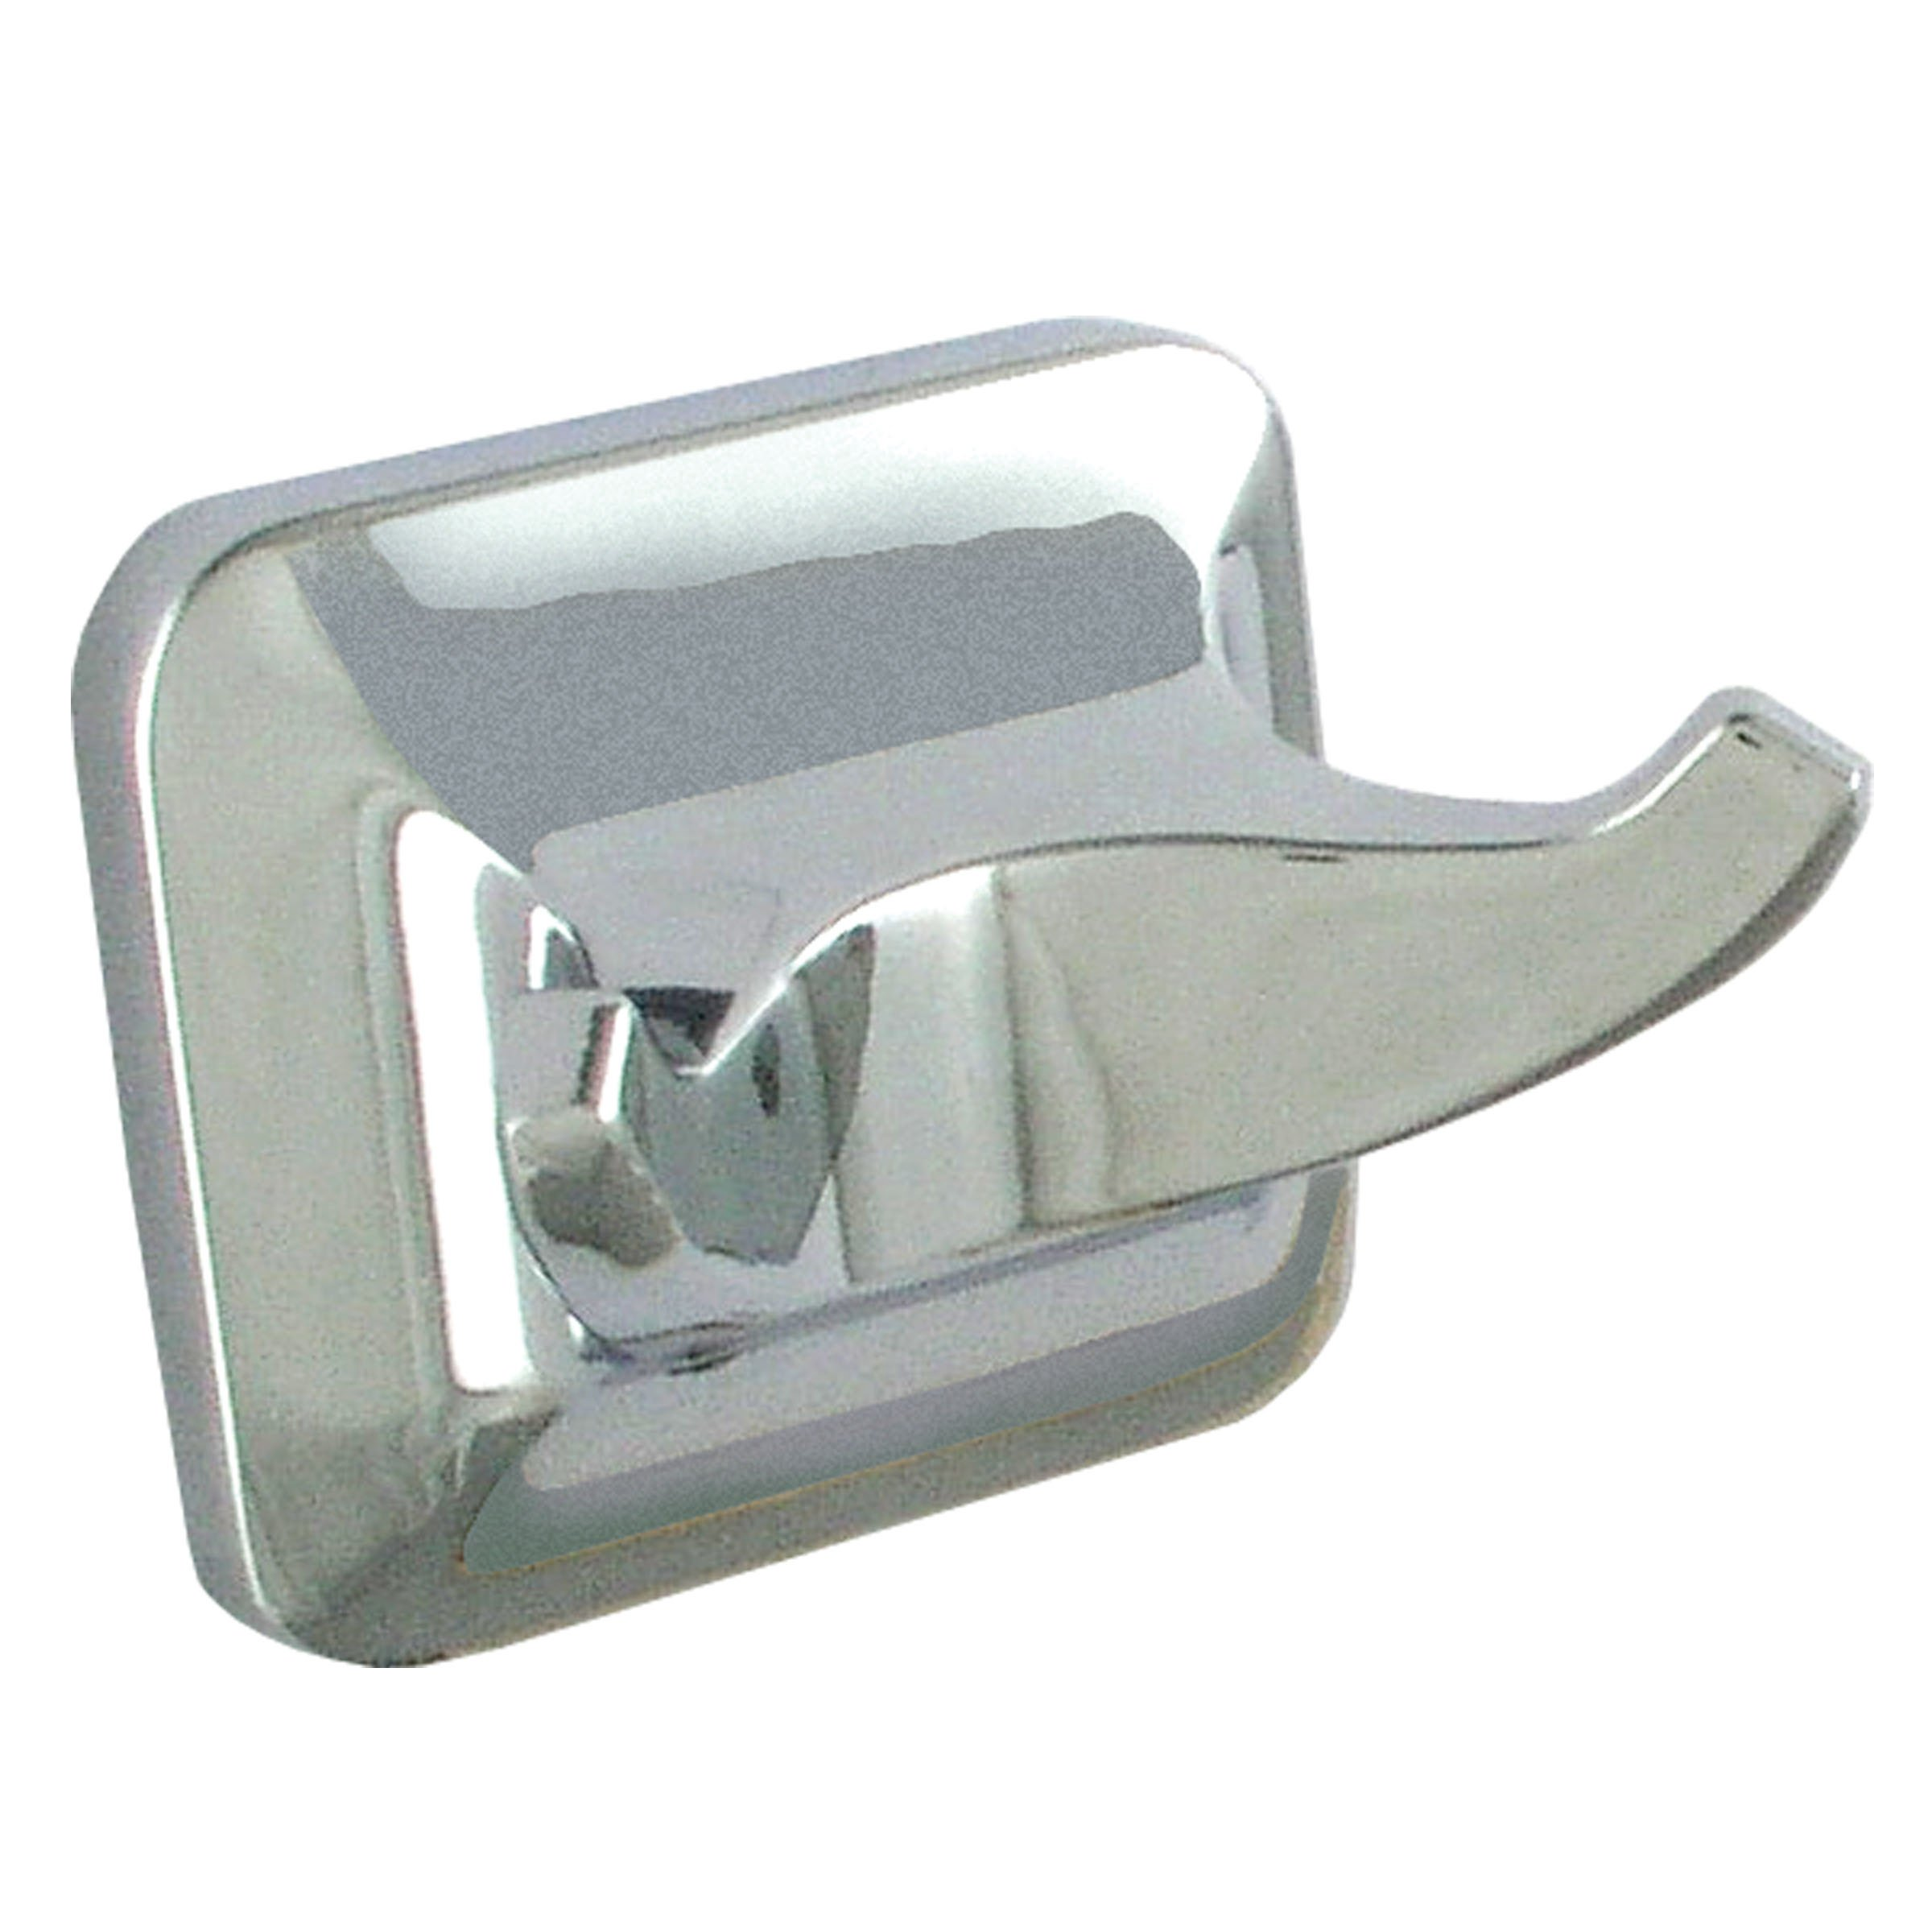 LDR 162 4662 Prestige Double Robe Hook, Chrome